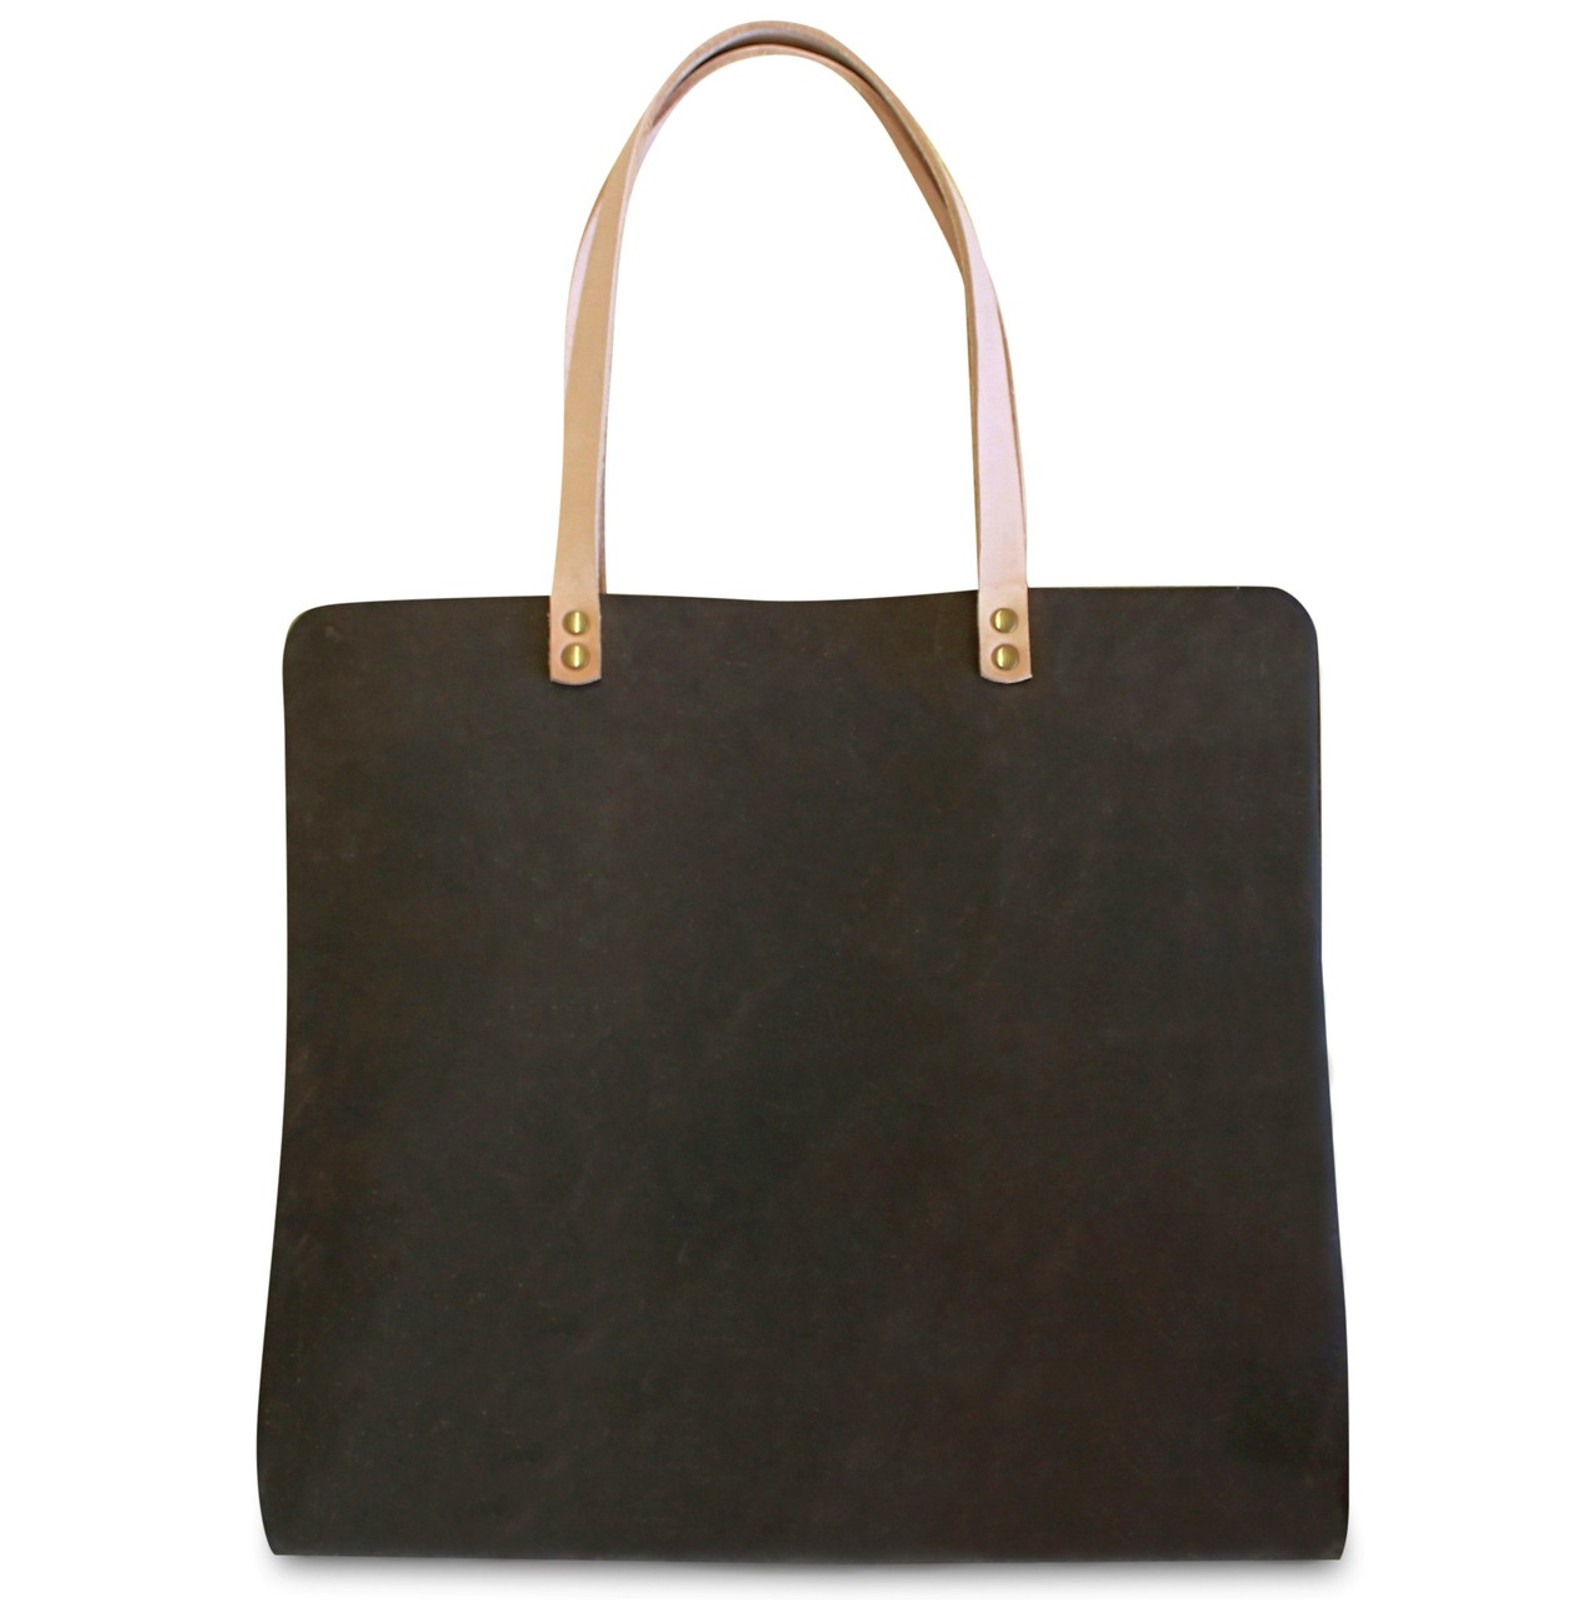 firewood carrying bag, leather bag, durable, rugged, hammer riveted, made in usa, American Bench Craft